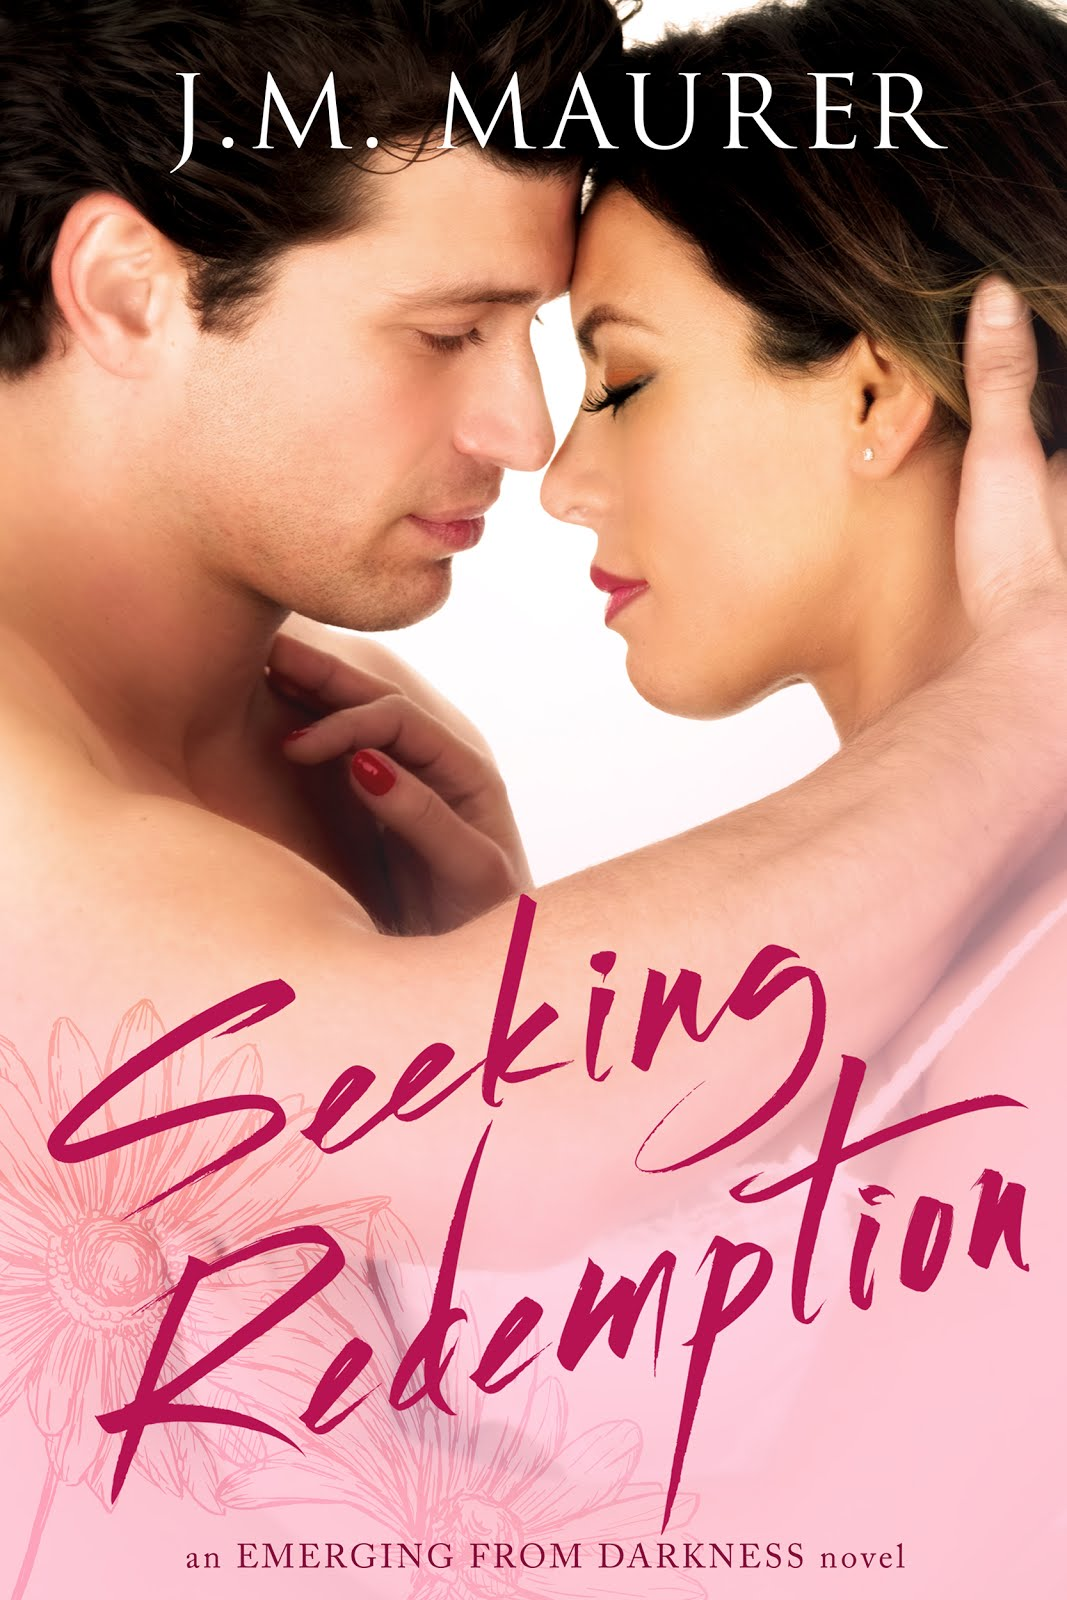 Seeking Redemption ~ Book 2